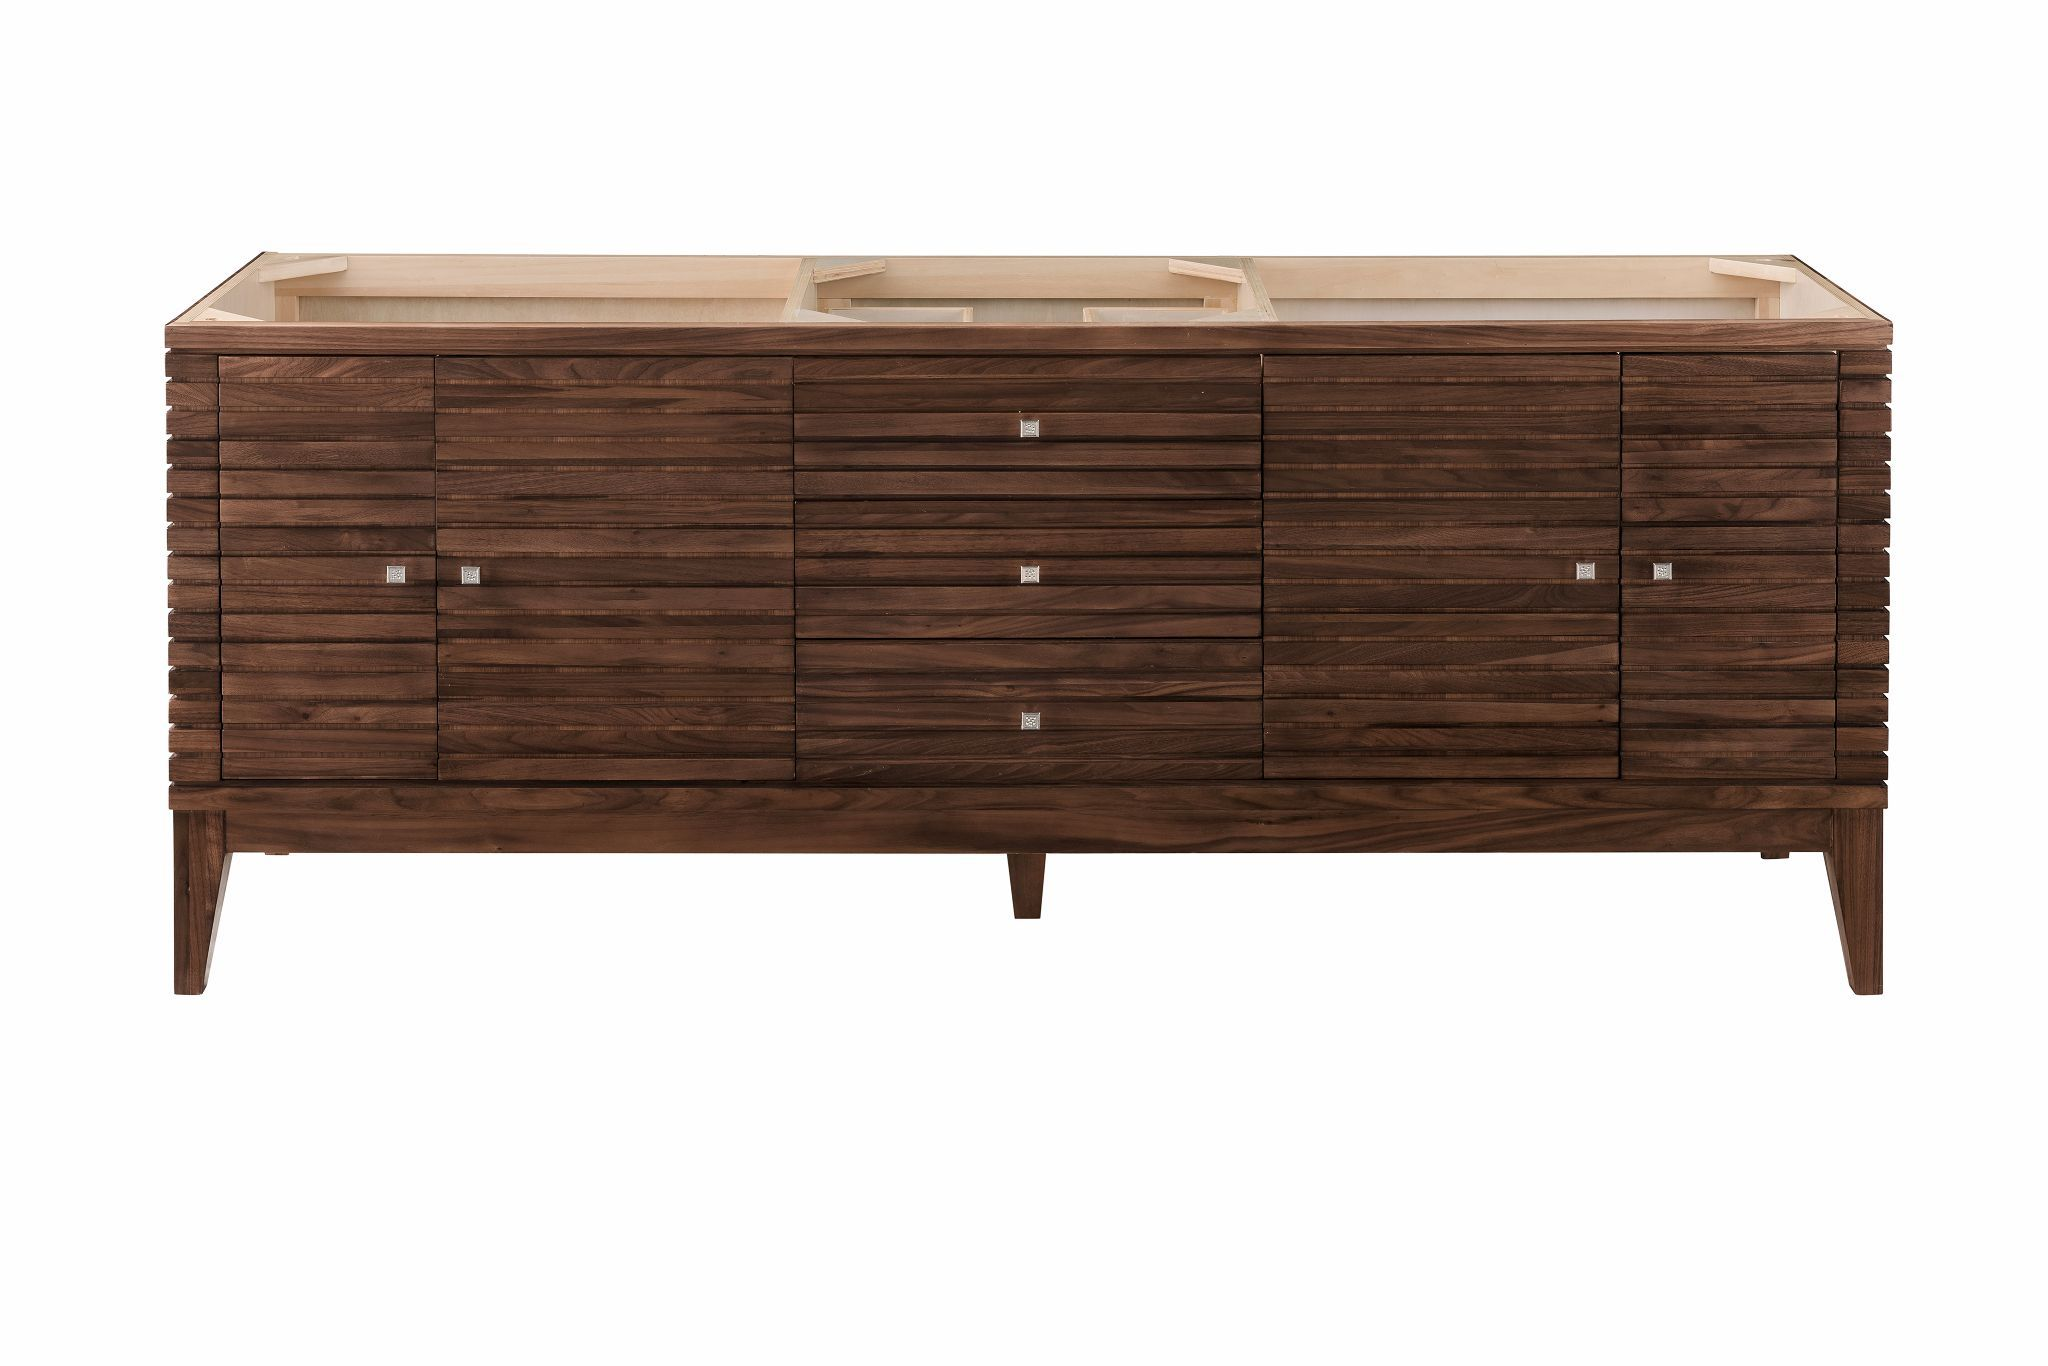 "Linear 72"" Double Bathroom Vanity, Mid Century Walnut Double bathroom Vanity James Martin Vanities"